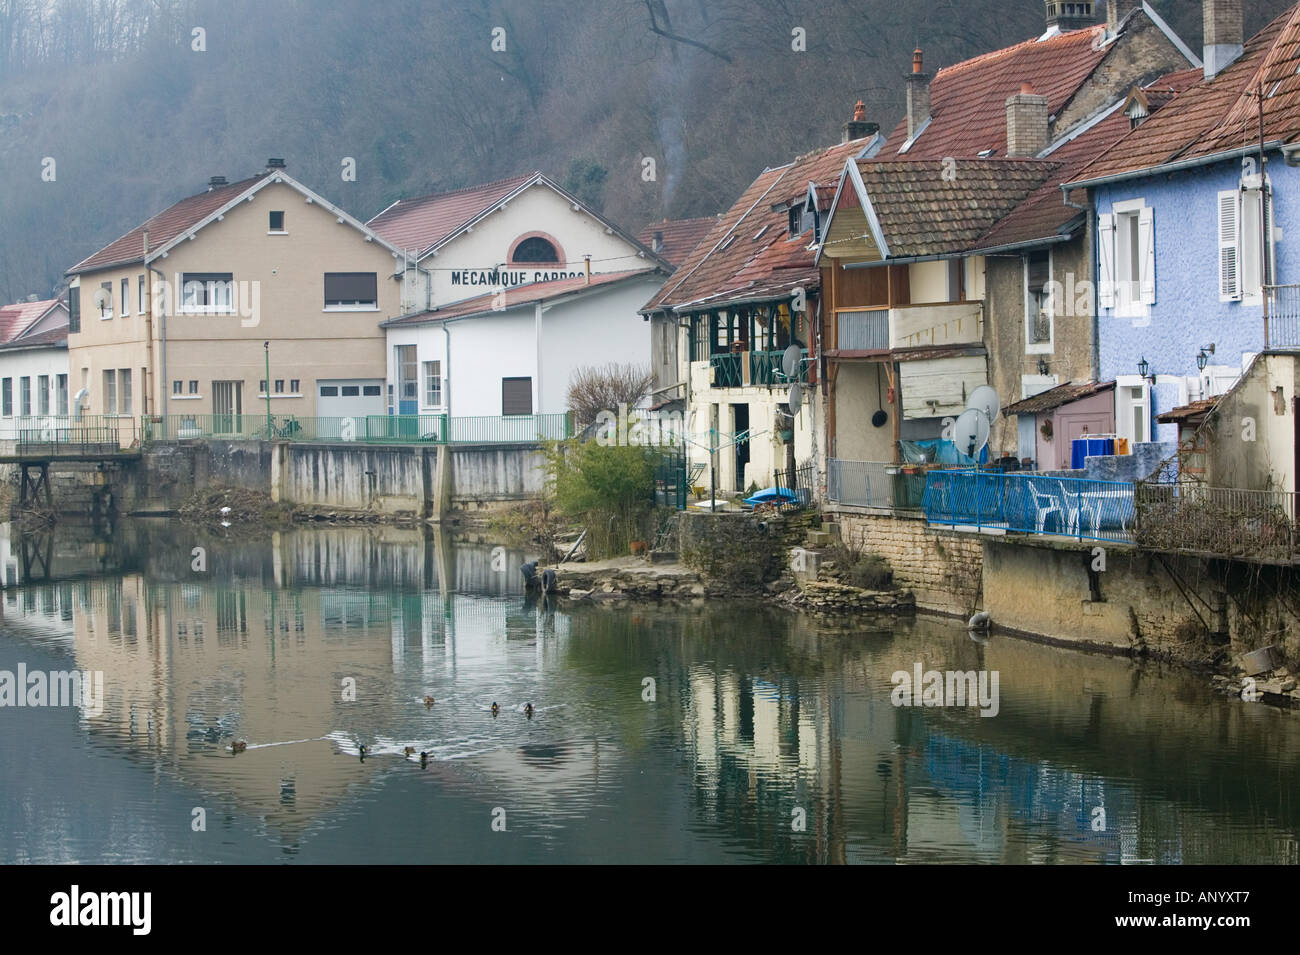 FRANCE, Jura, Doubs, L'ISLE, SUR, LE, DOUBS: Doubs River Valley / Canal Town - Stock Image